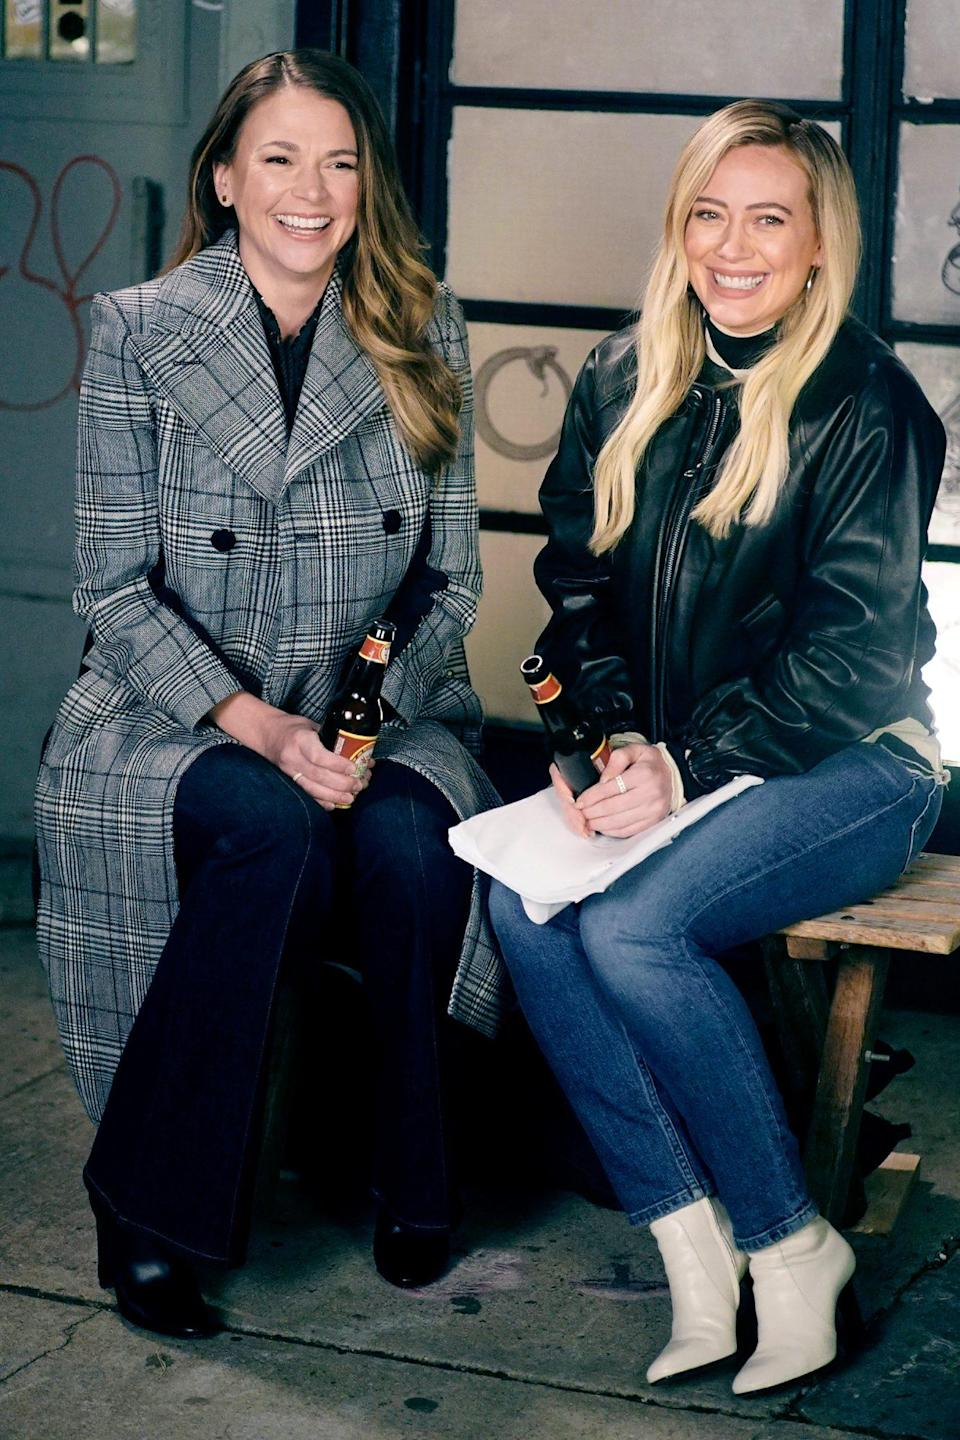 <p>Sutton Foster and Hilary Duff smile as they film scenes for the final season of <em>Younger </em>in N.Y.C. on Thursday. </p>